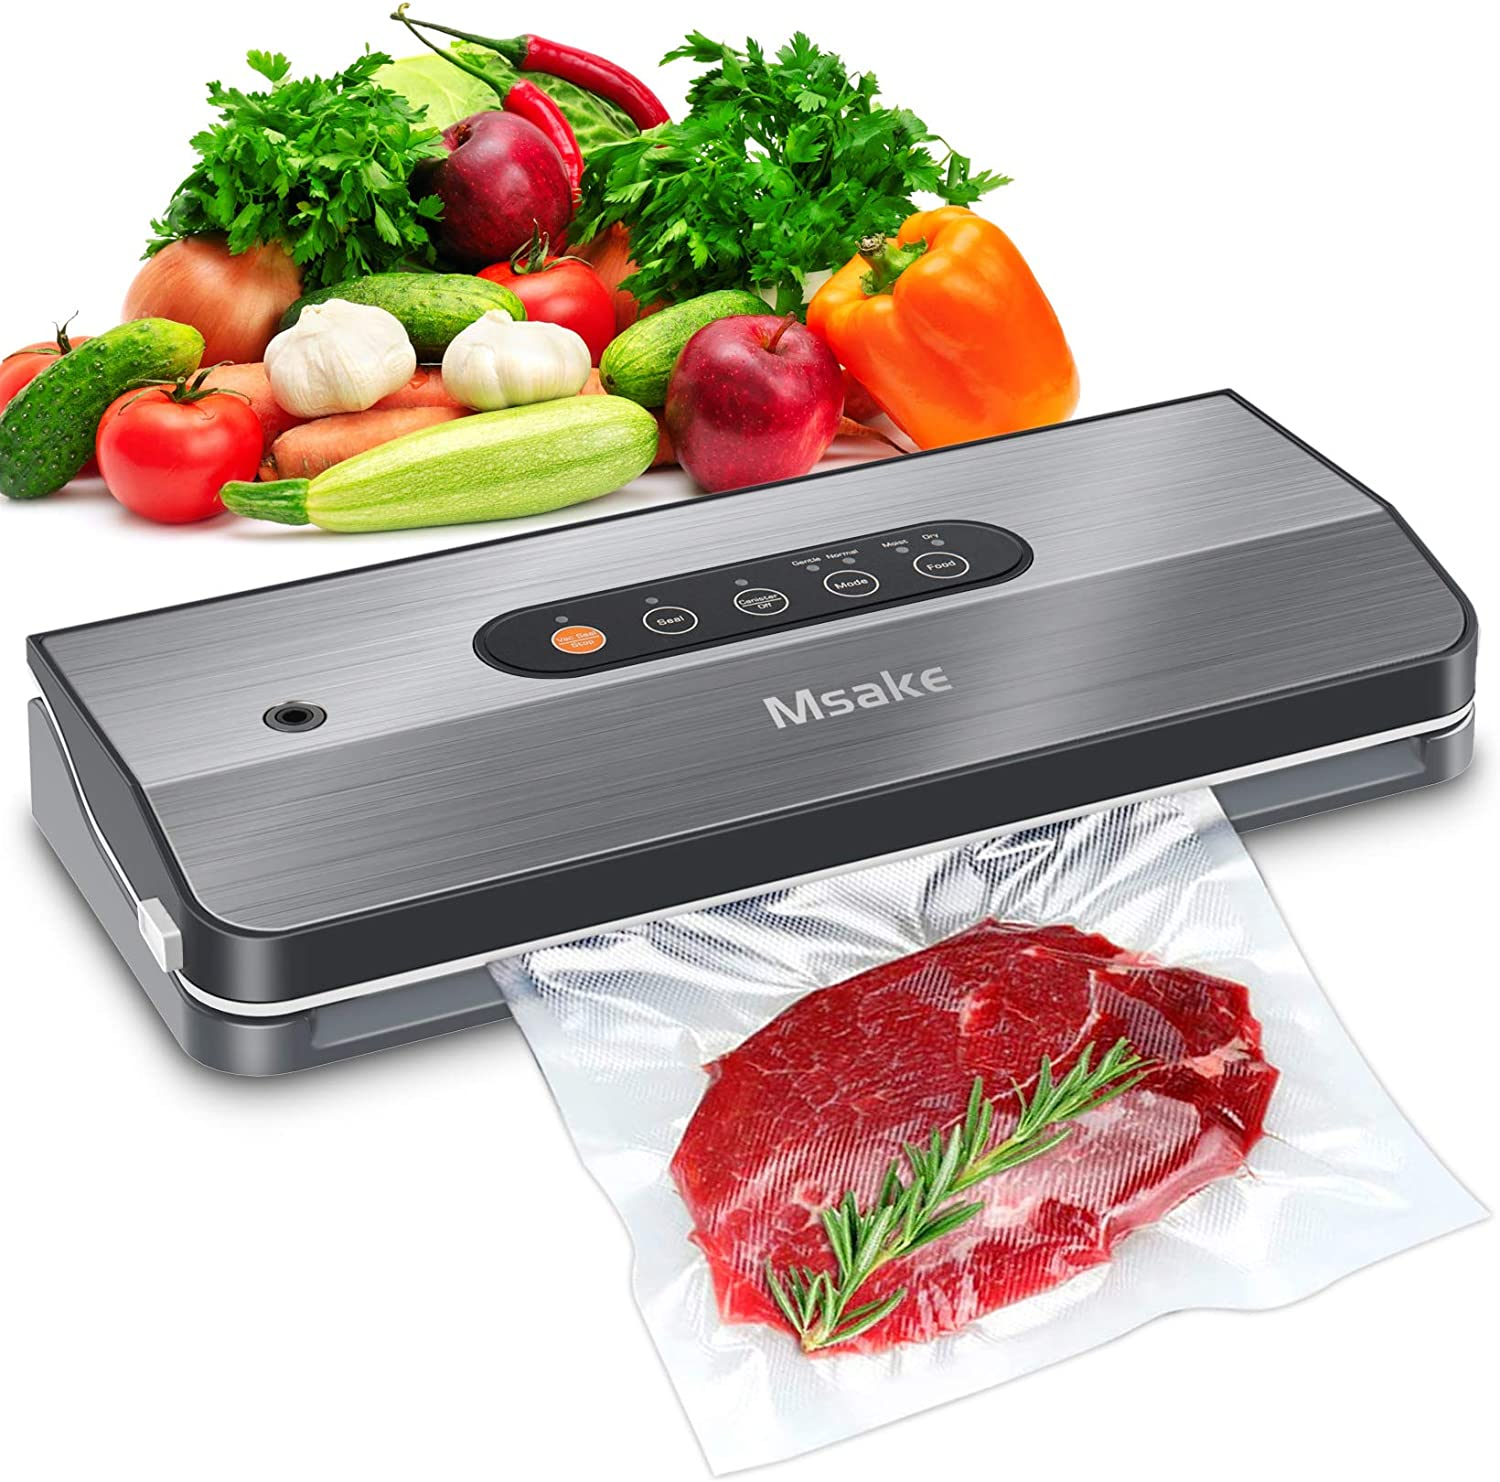 Vacuum Sealer Machine - MSAKE SJ-209 Food Savers for Food Preservation - Full Starter Kit | 4 Food Modes | Led Indicator Lights Panel | Separated and Stainless Design for Easy Clean | Compact Design